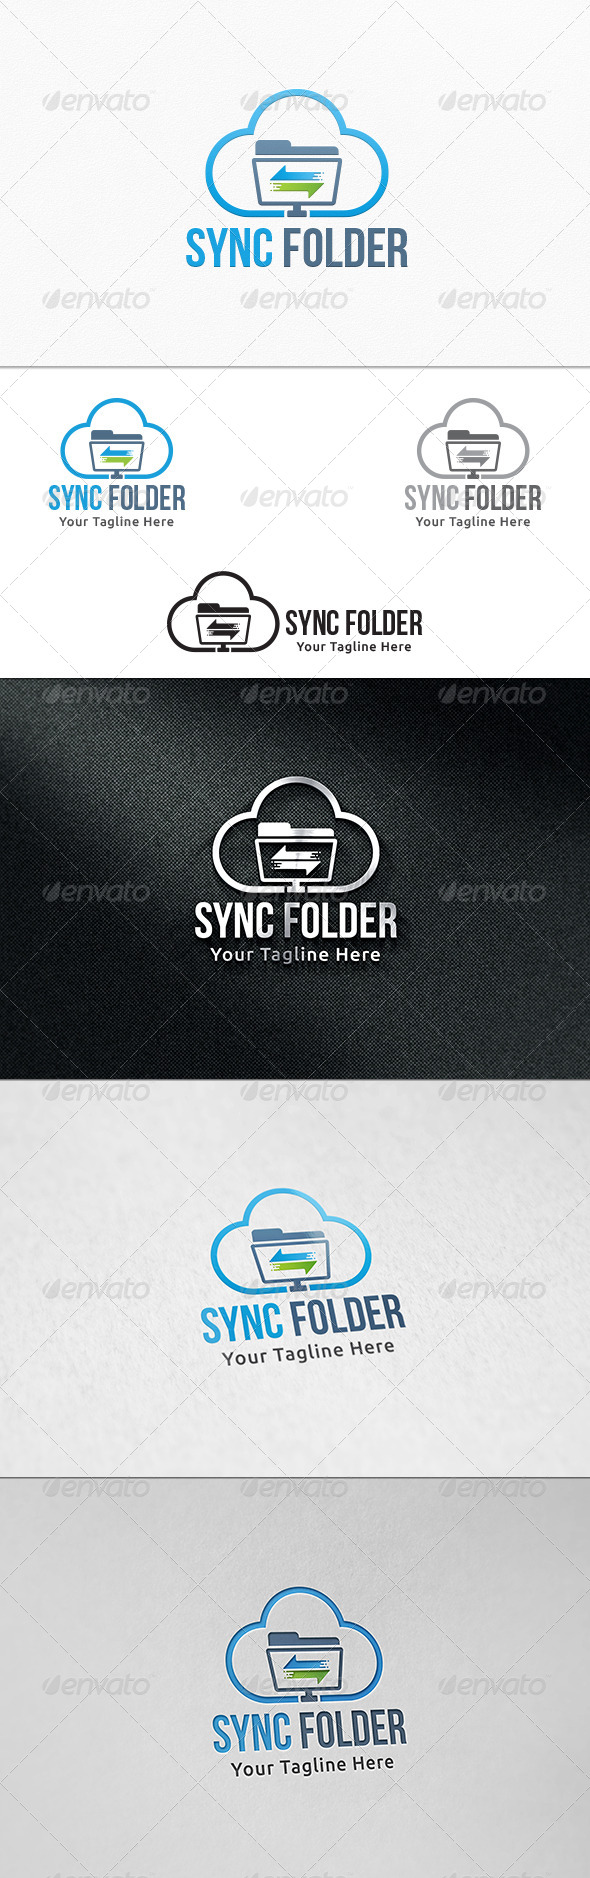 GraphicRiver Sync Folder Logo Template 8108441